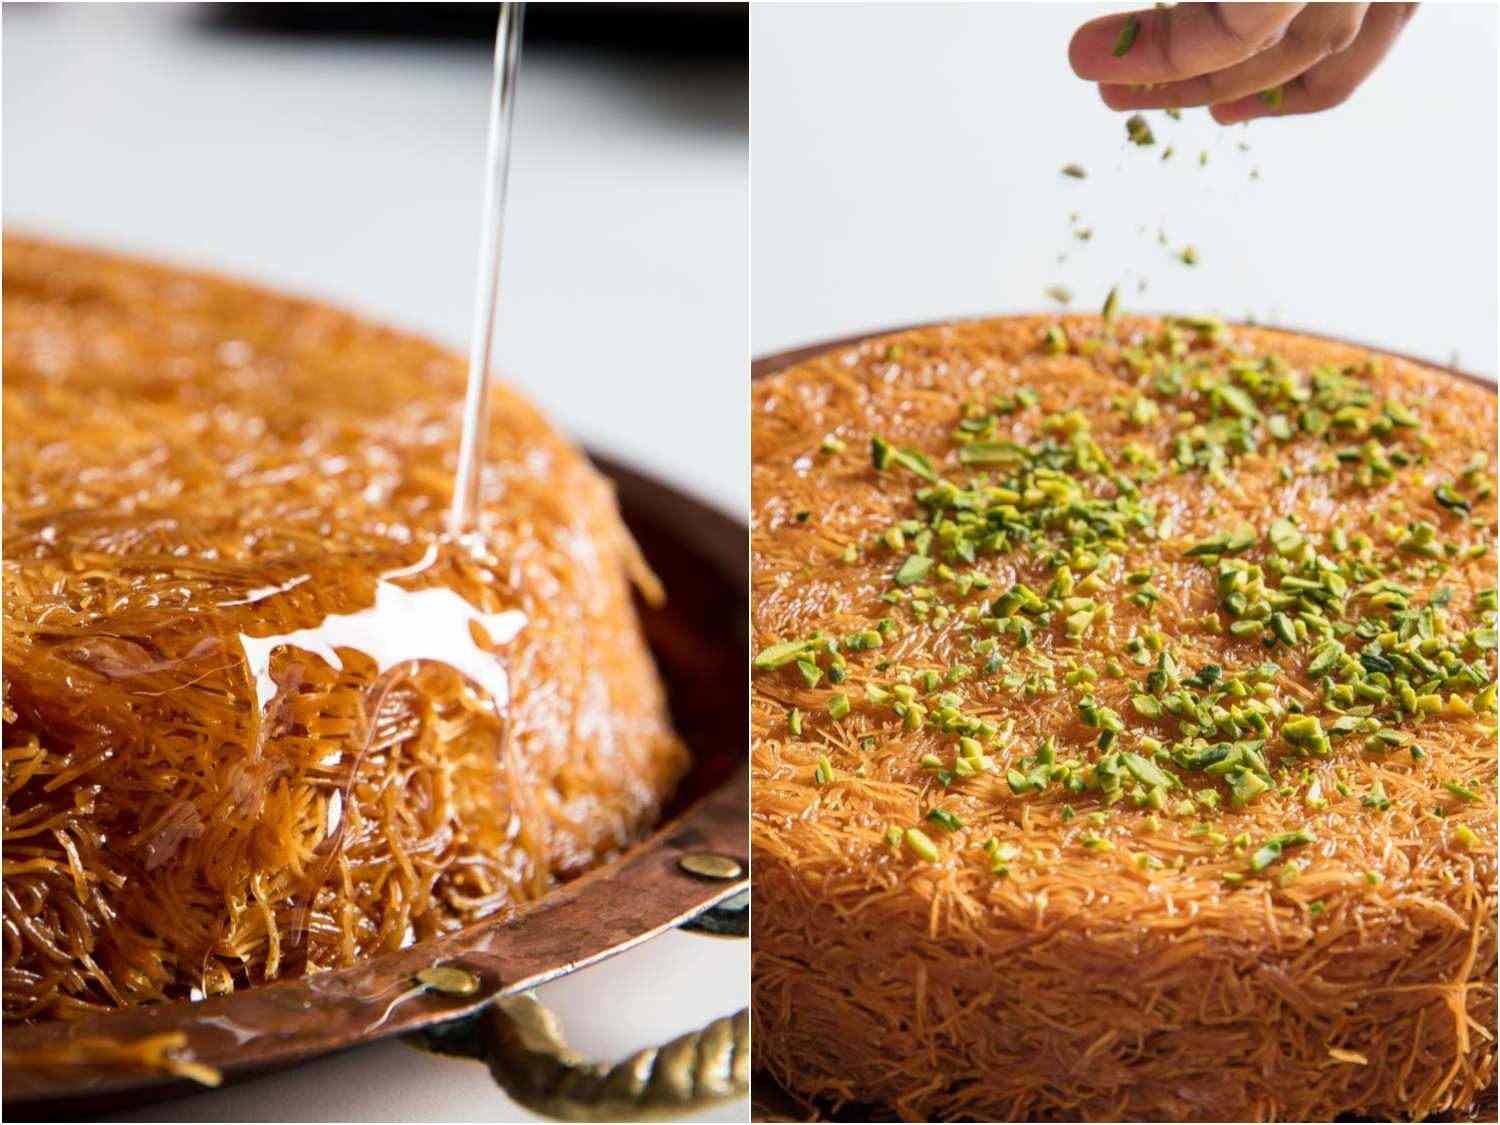 baked kanafeh, drizzled with syrup and sprinkled with chopped pistachios